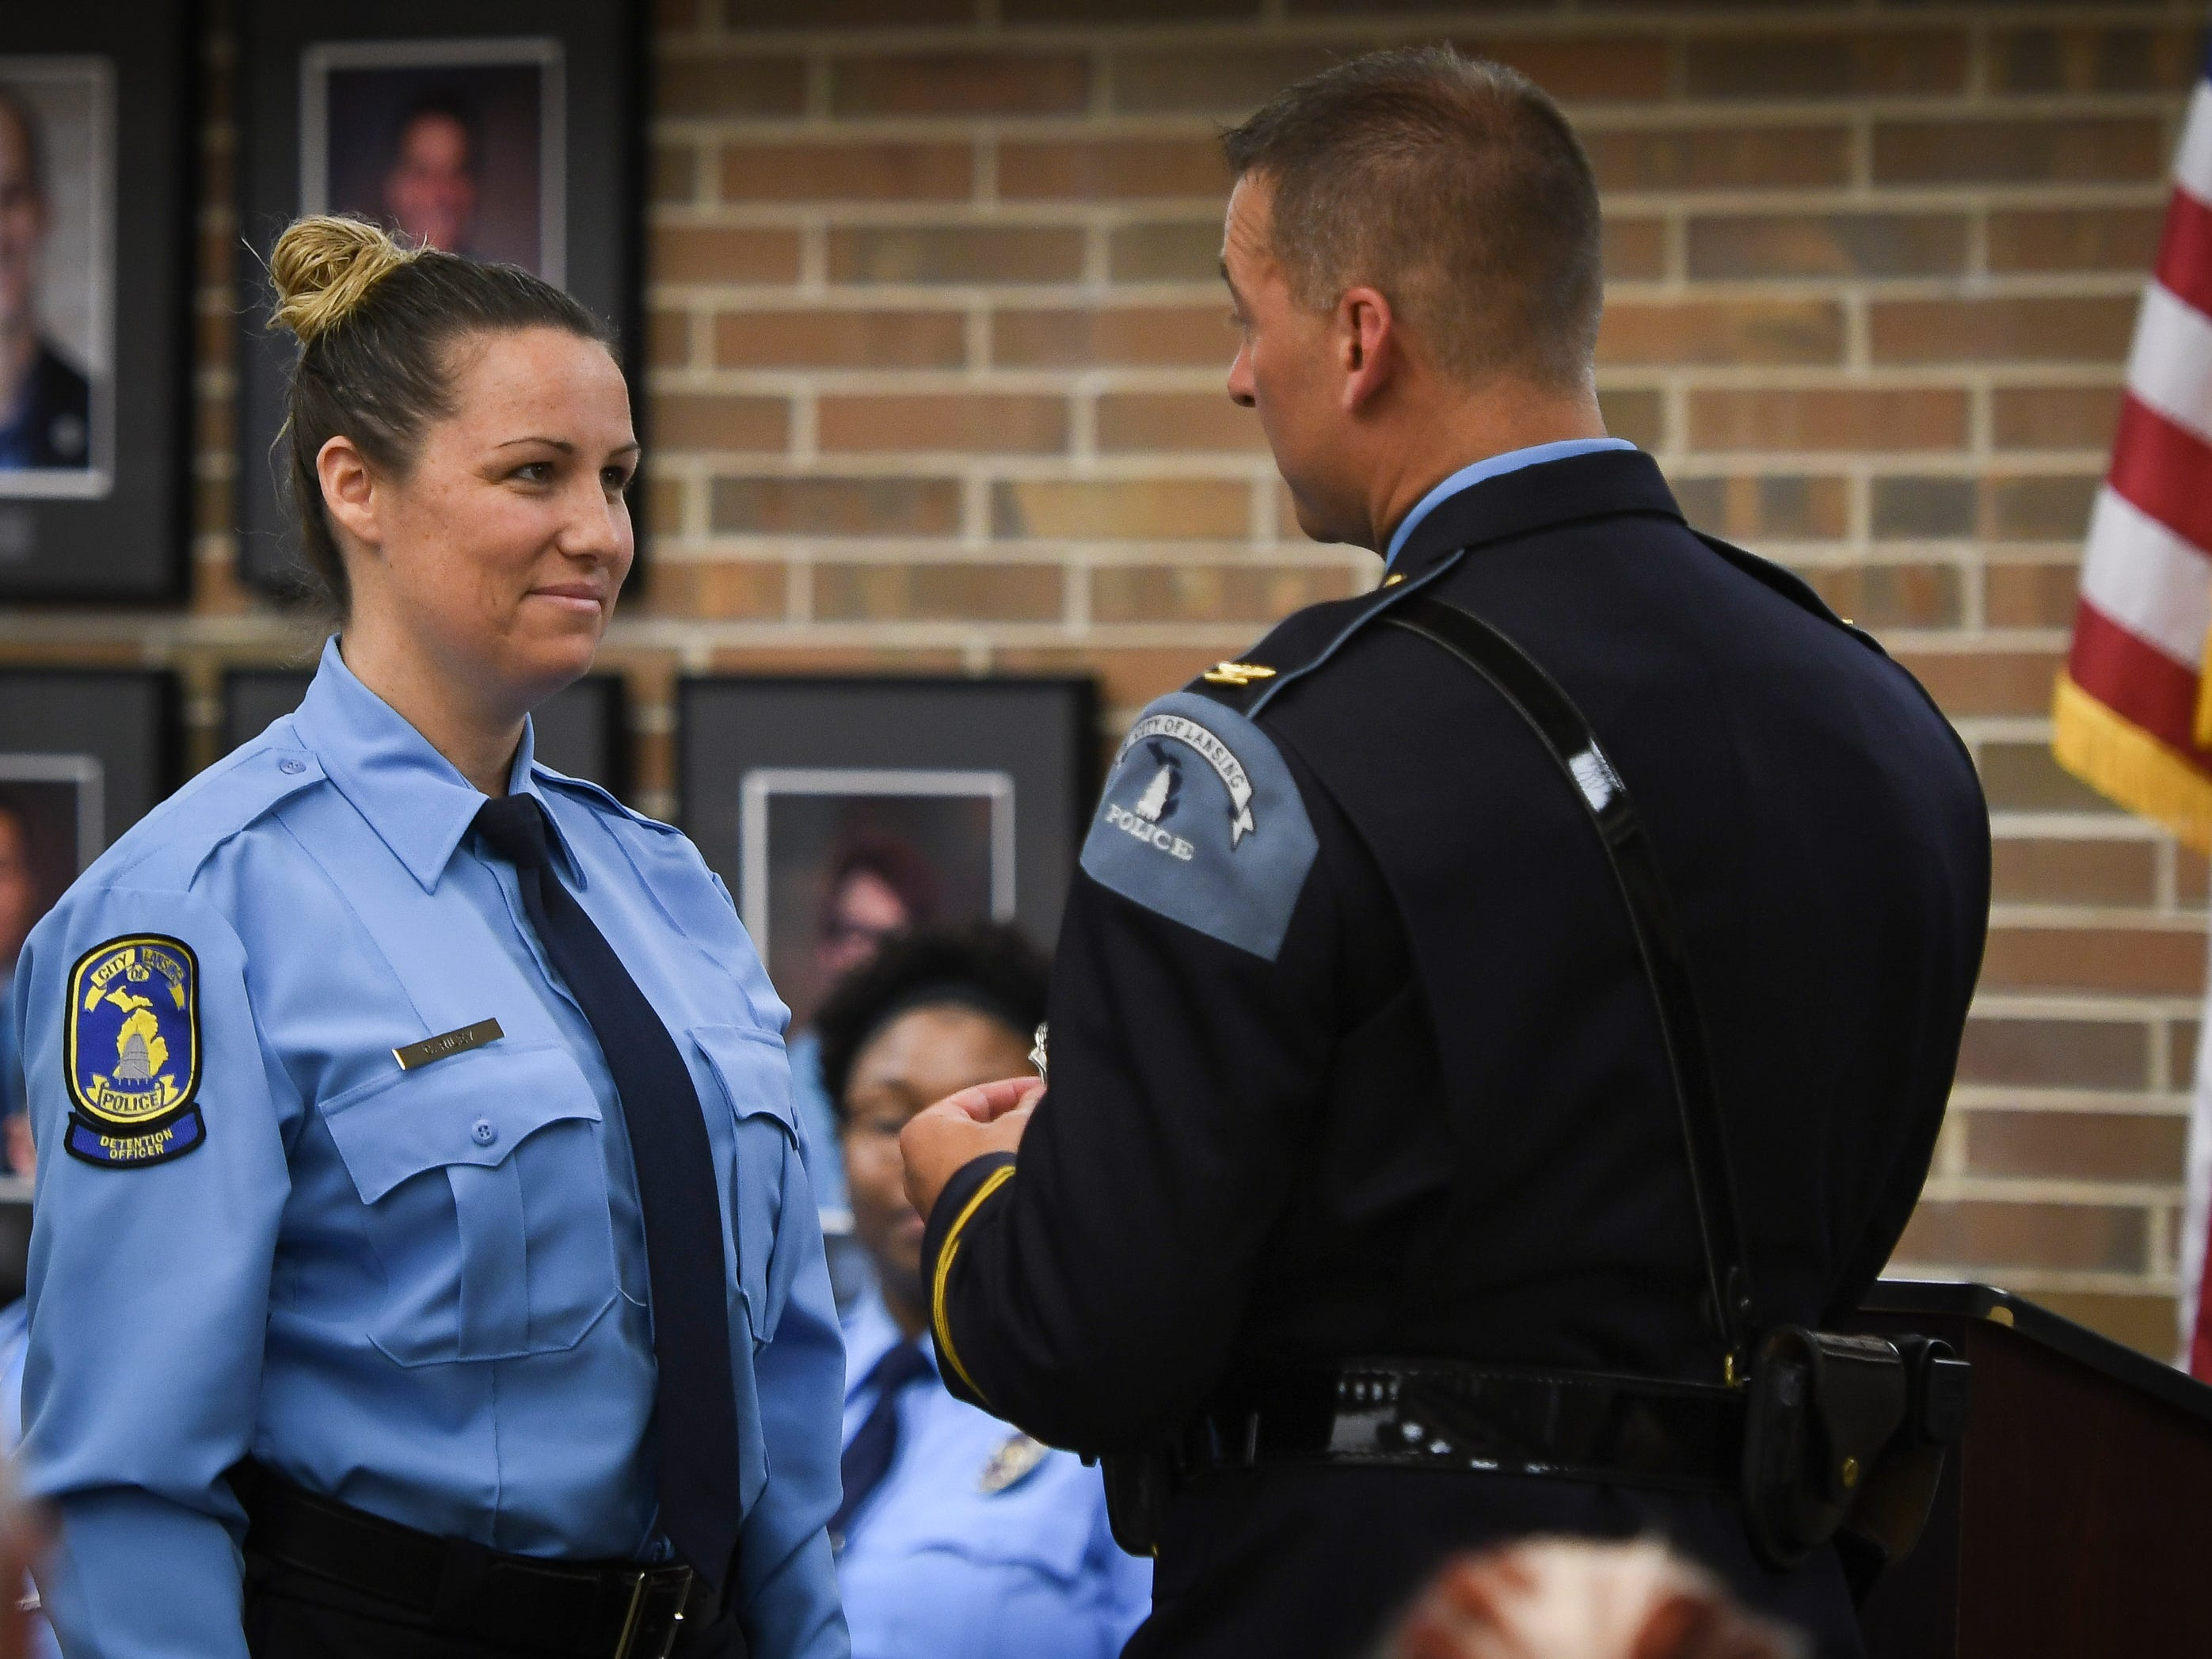 Chief Mike Yankowski of the Lansing Police Department prepares to pin a badge on newly sworn in detention officer Colleen Riley, Monday, May 6, 2019, during the swearing in ceremony at the Lansing Police Operations Center.